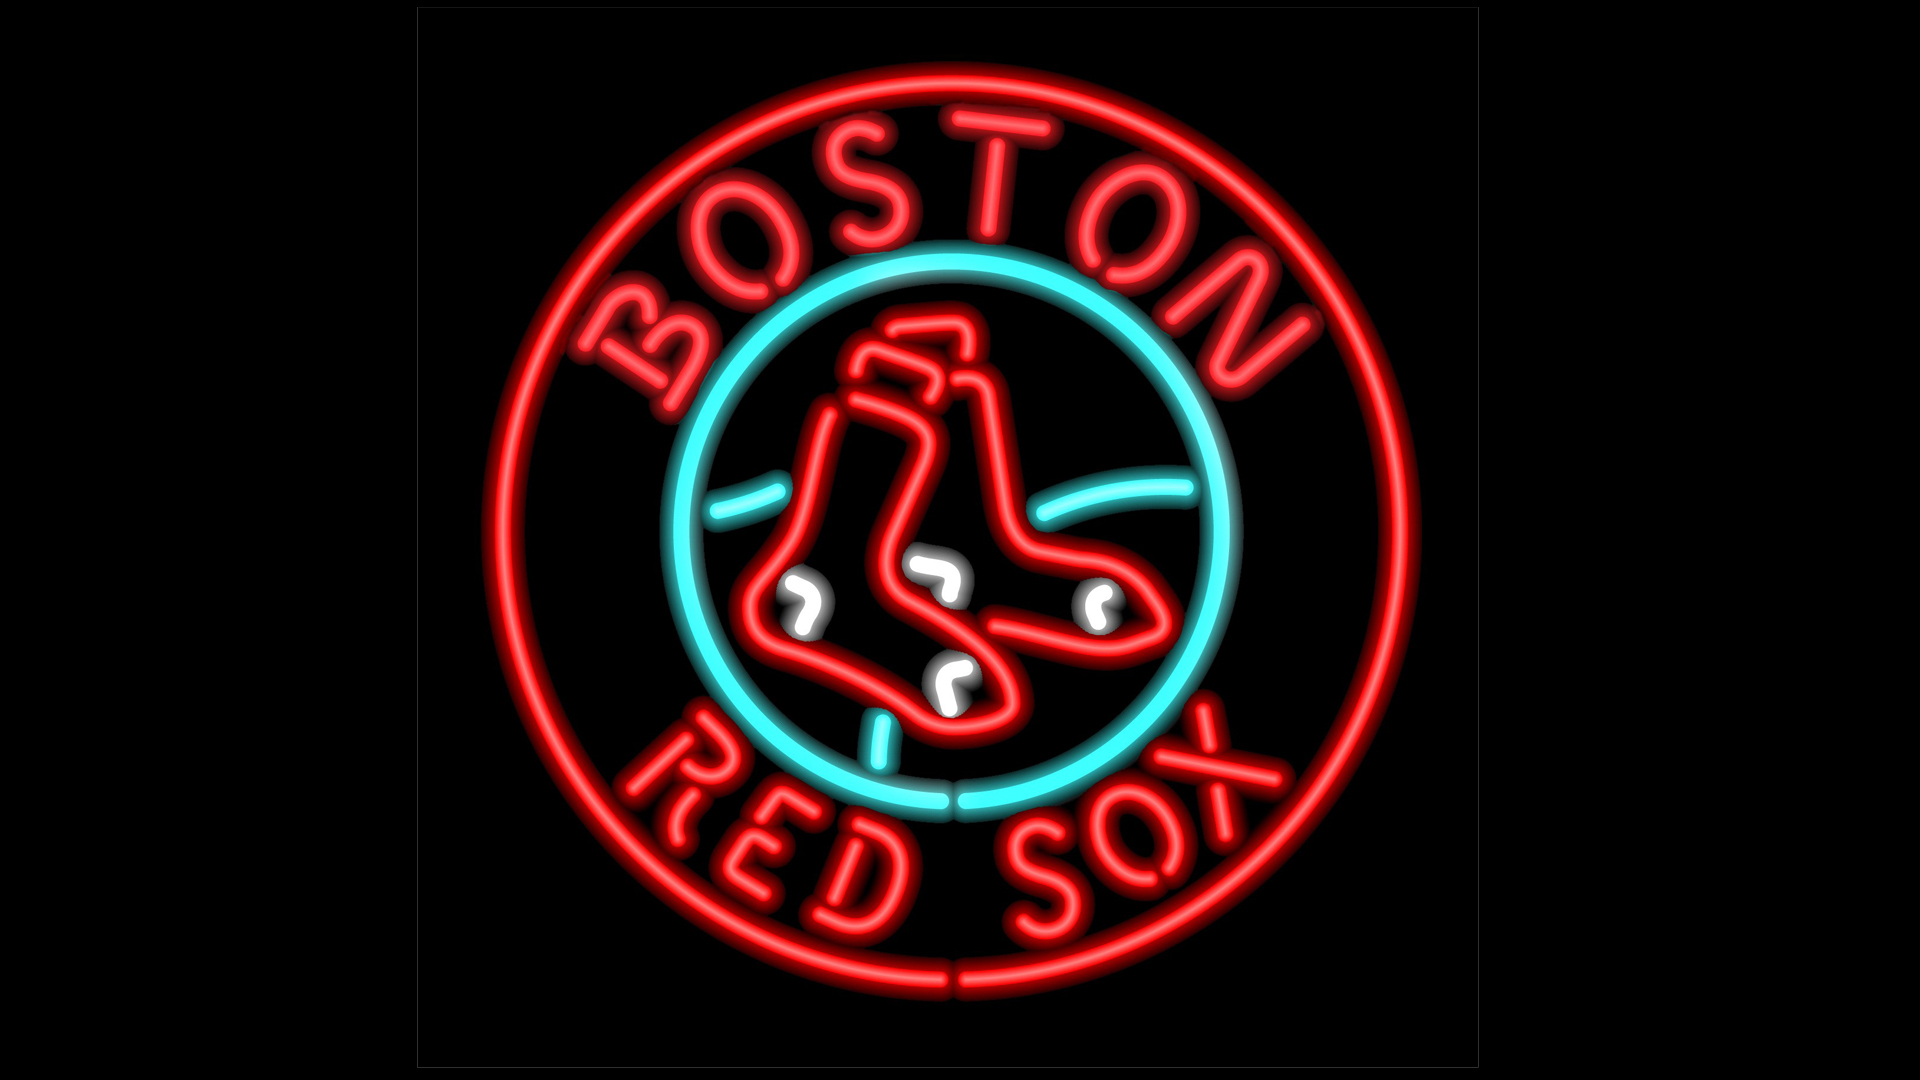 Red Sox Wallpapers s Backgrounds